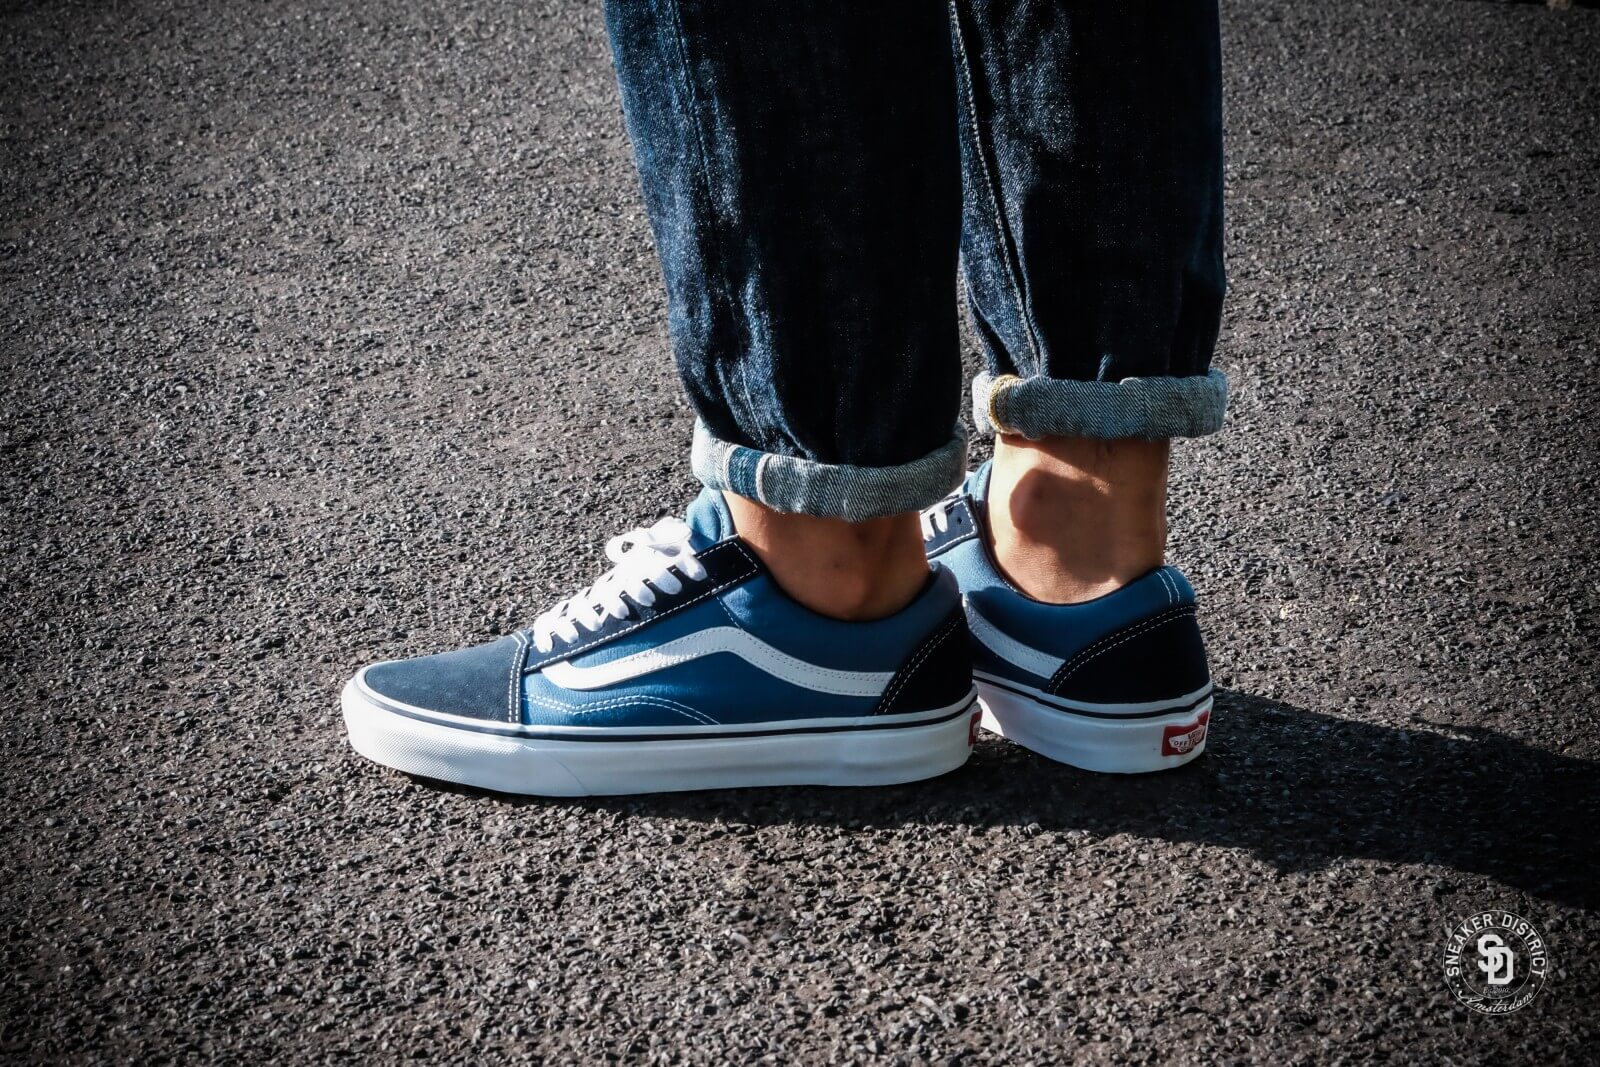 Vans Old Skool Navy VN000D3HNVY